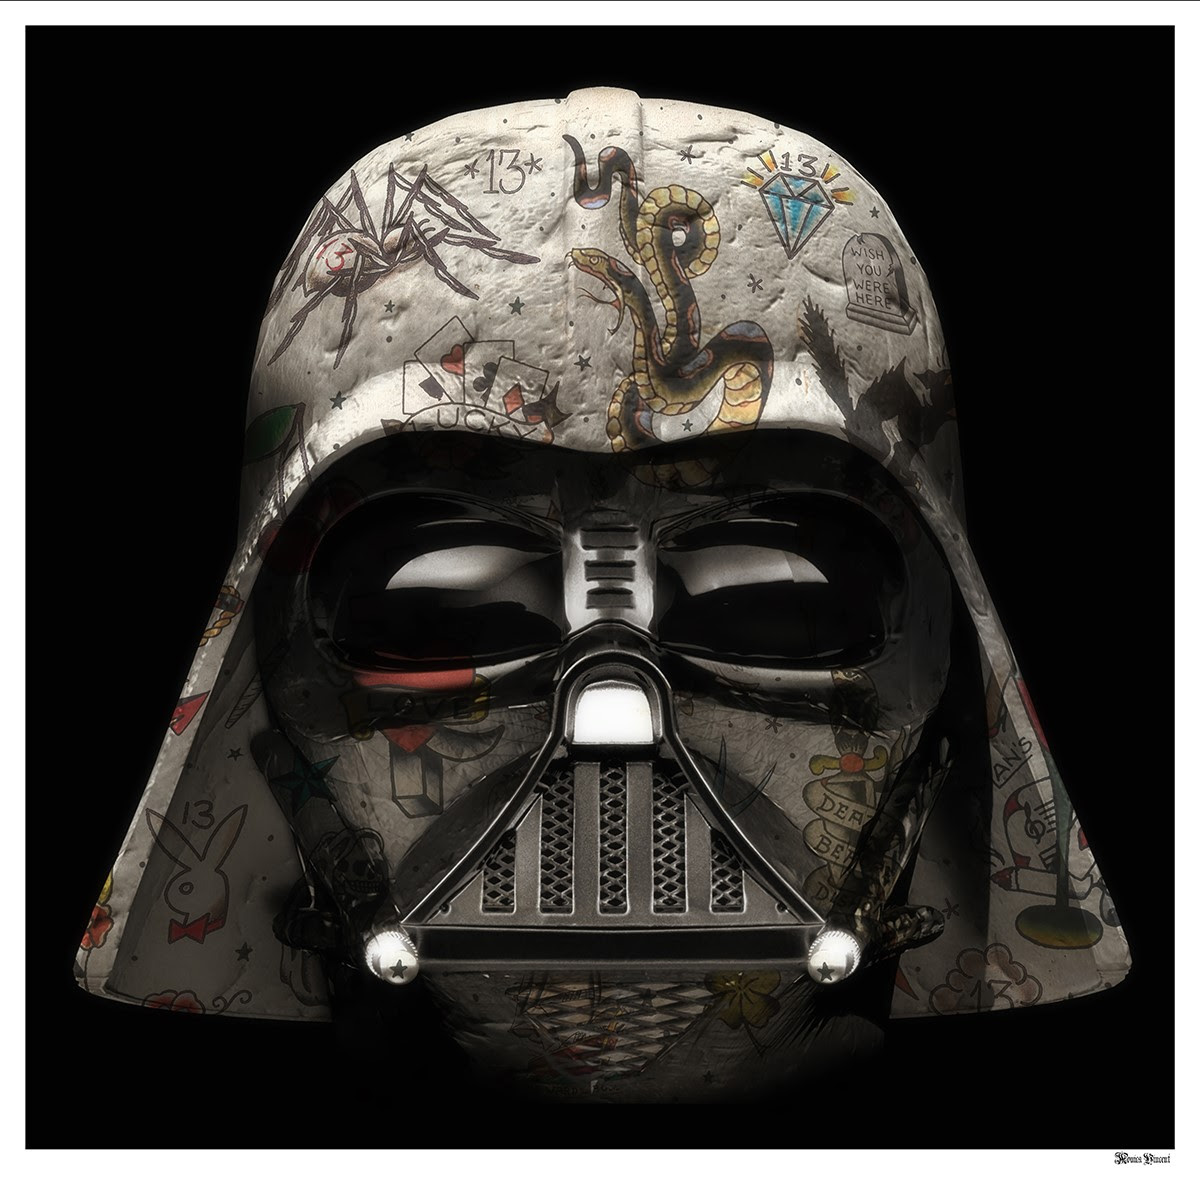 The Dark Lord - Darth Vader (Black Background) - Small - Framed by Monica Vincent